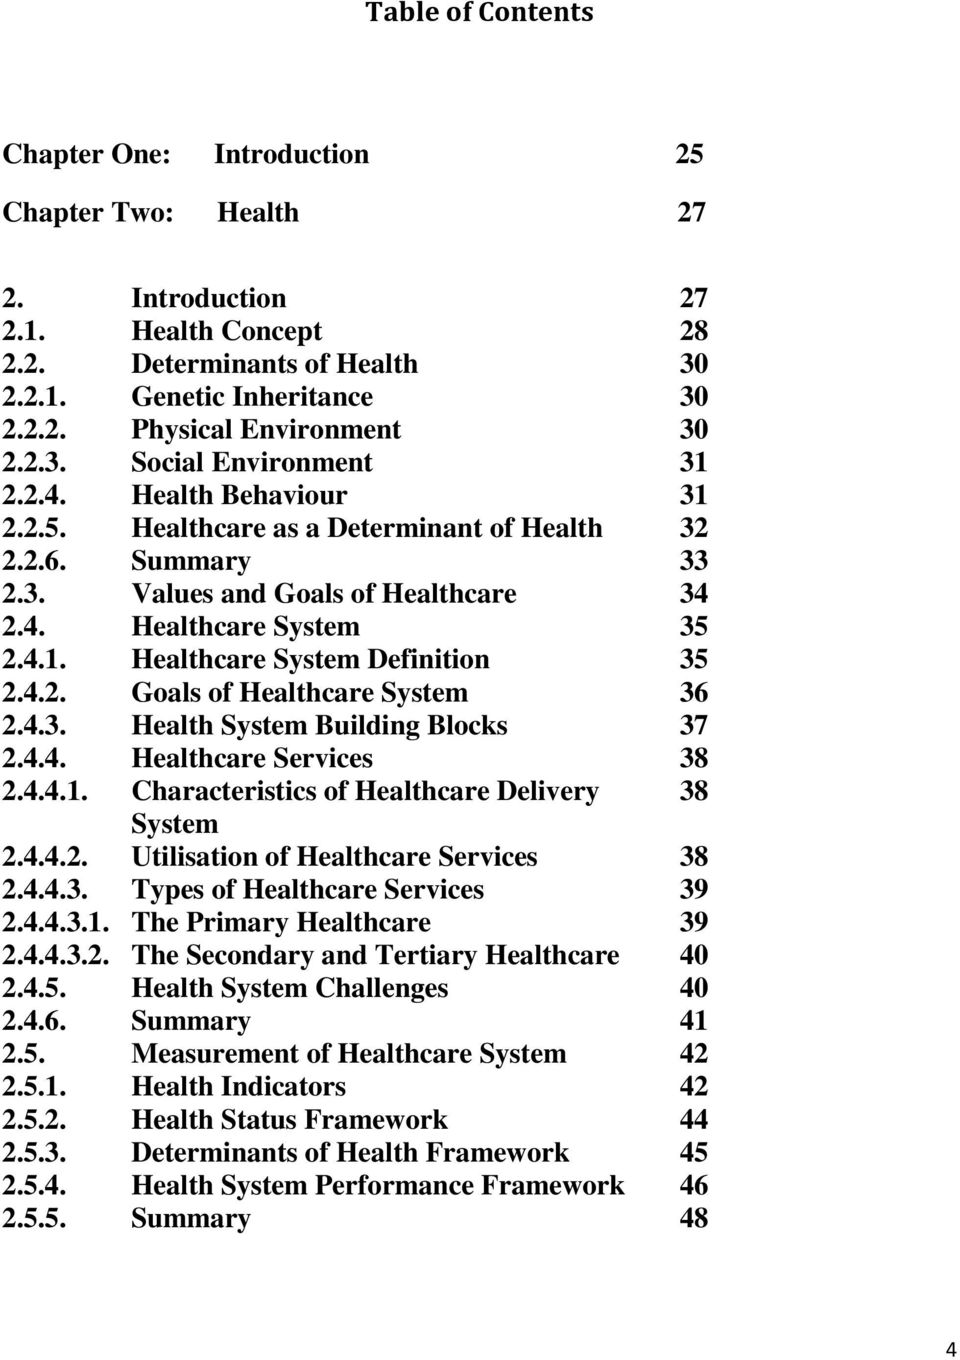 4.2. Goals of Healthcare System 36 2.4.3. Health System Building Blocks 37 2.4.4. Healthcare Services 38 2.4.4.1. Characteristics of Healthcare Delivery 38 System 2.4.4.2. Utilisation of Healthcare Services 38 2.